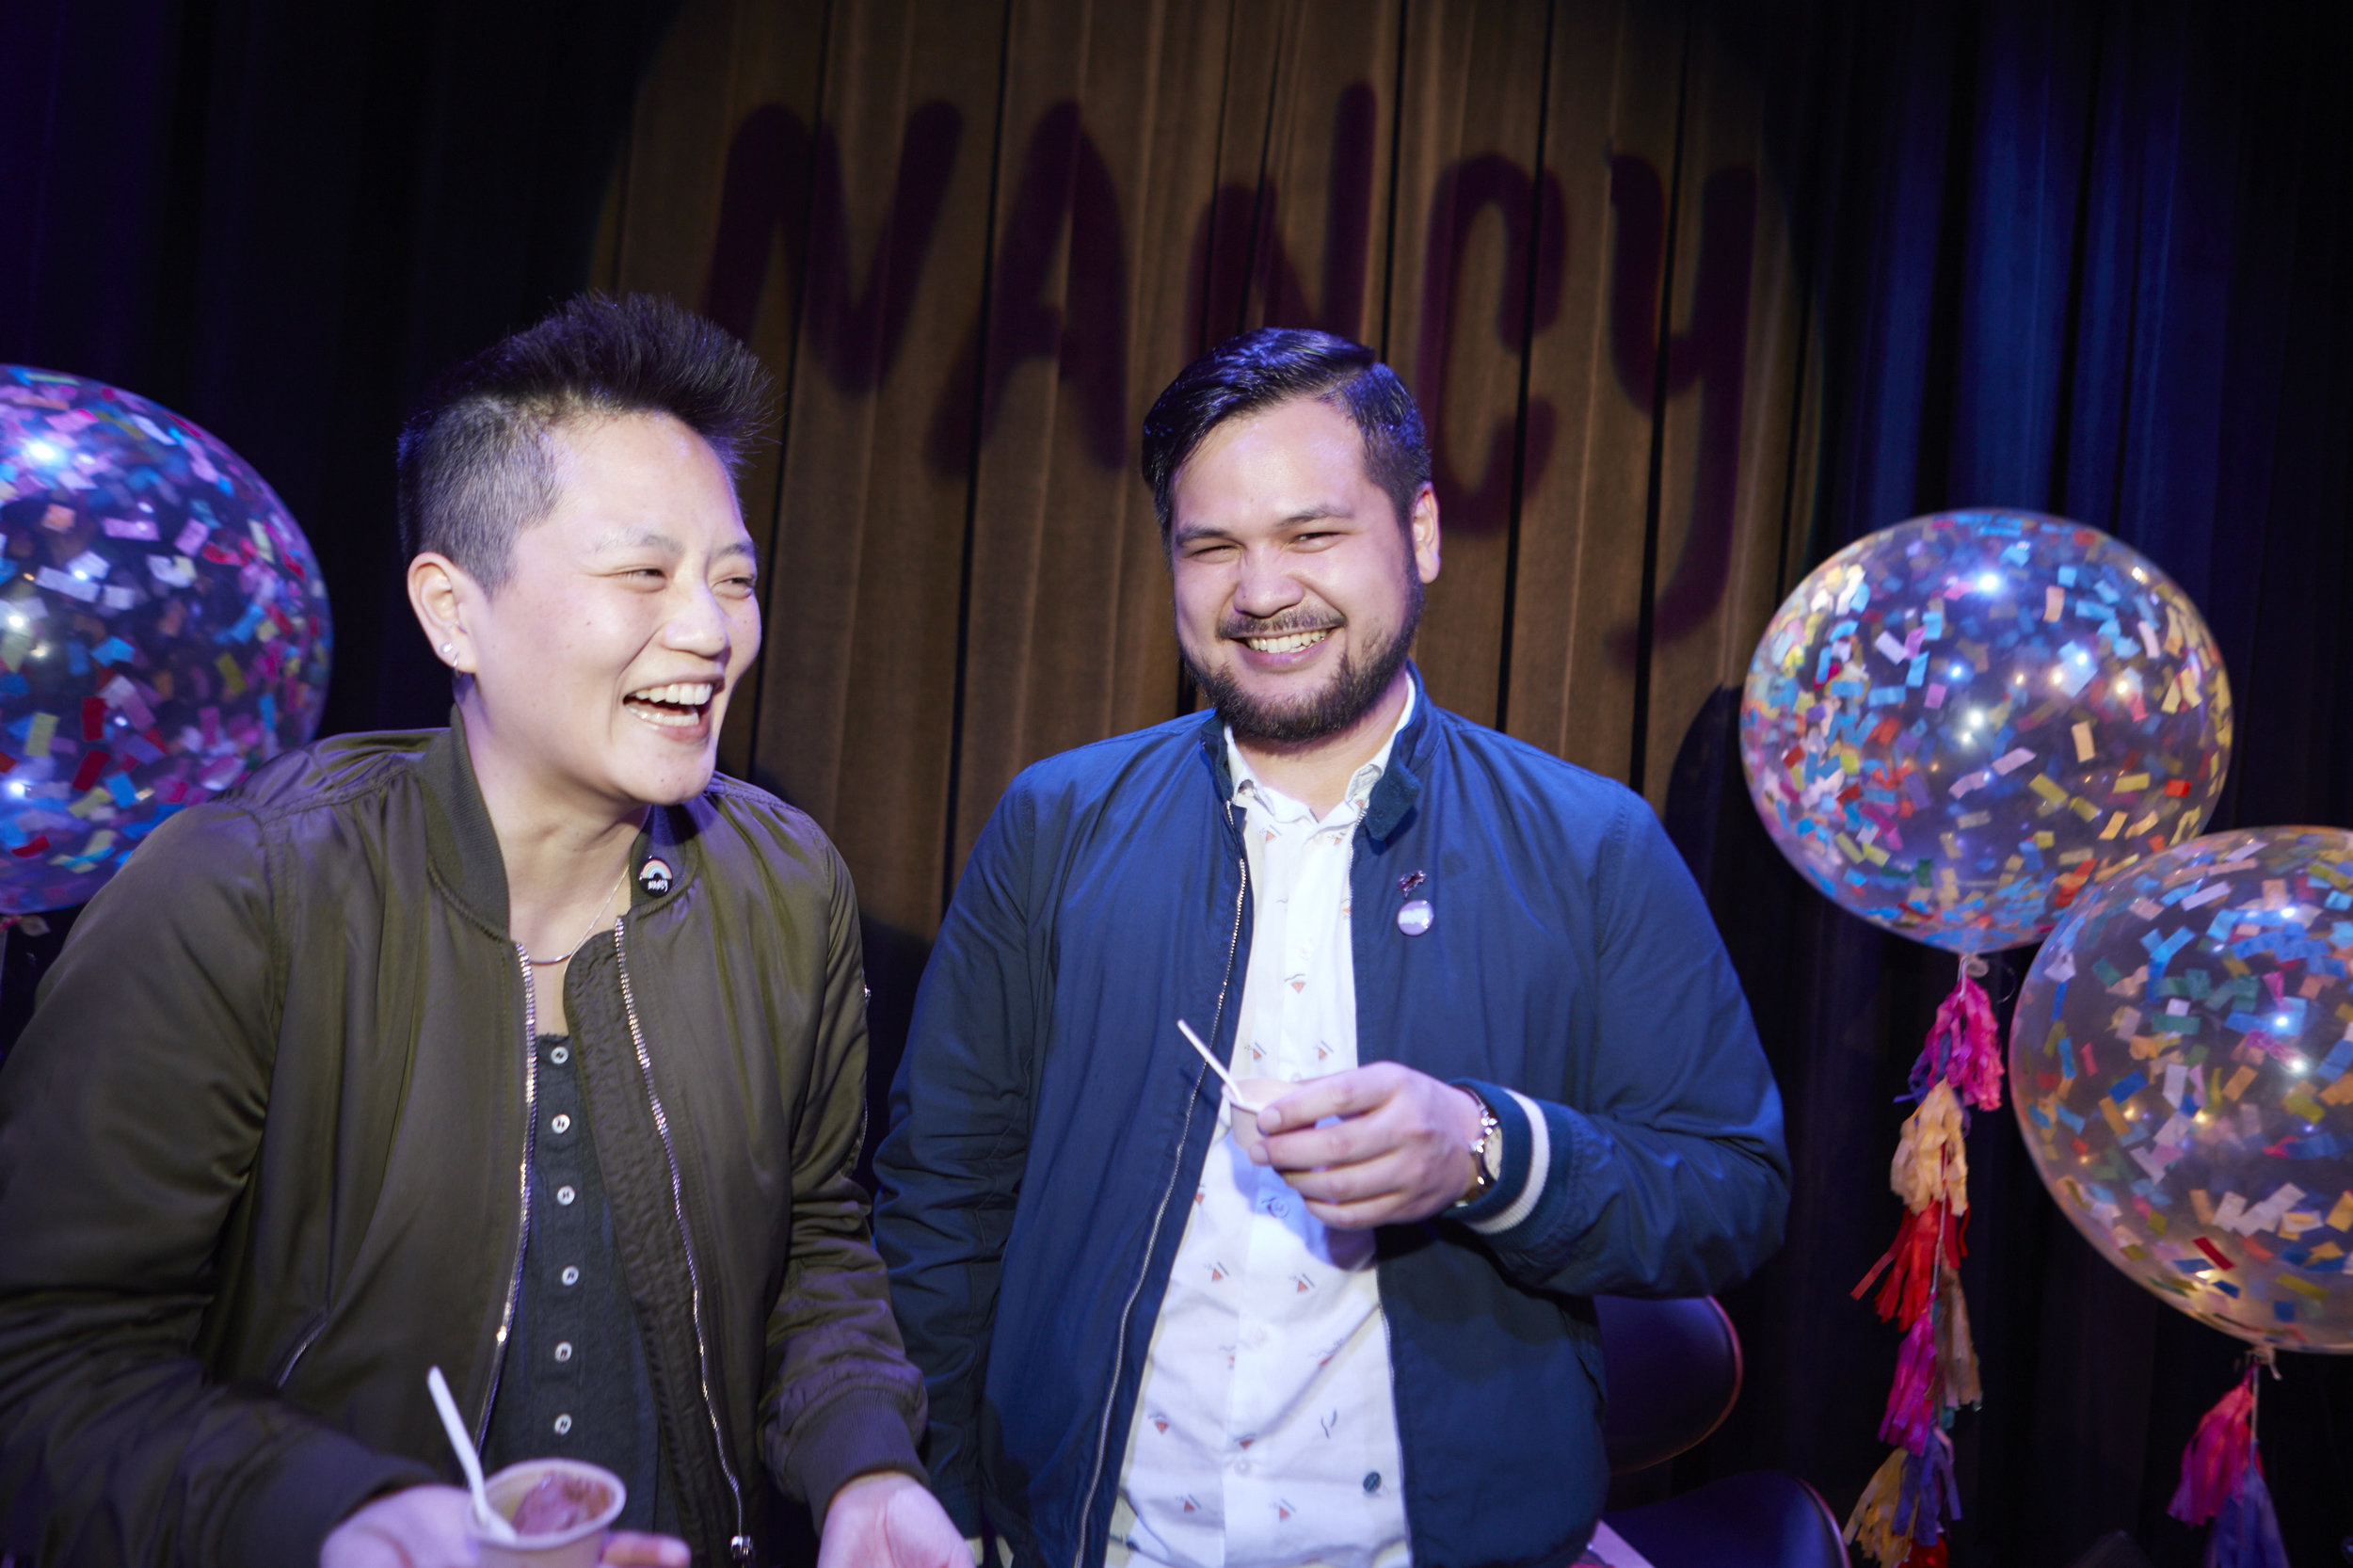 'Nancy' Is Public Radio's LGBTQ 'All Things Considered'